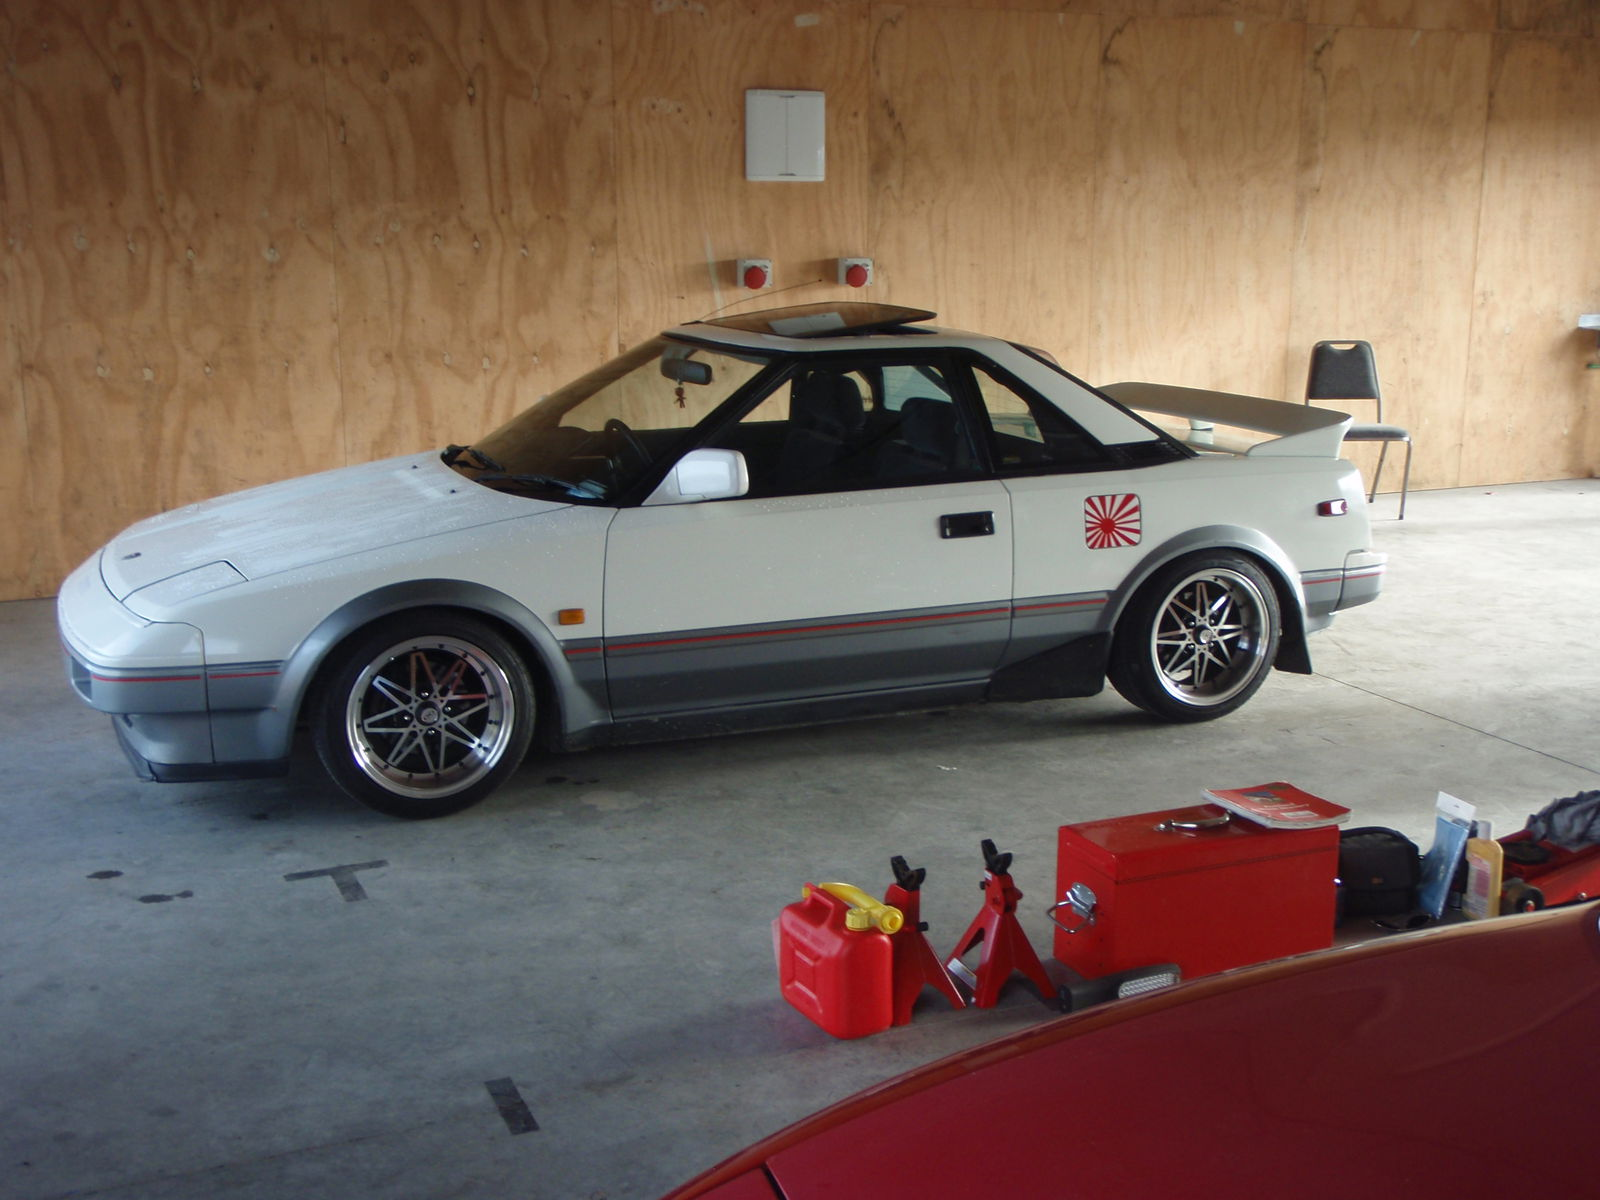 43aa30d4e1c AW11 Aggressive Fitment - MR2 Owners Club Message Board